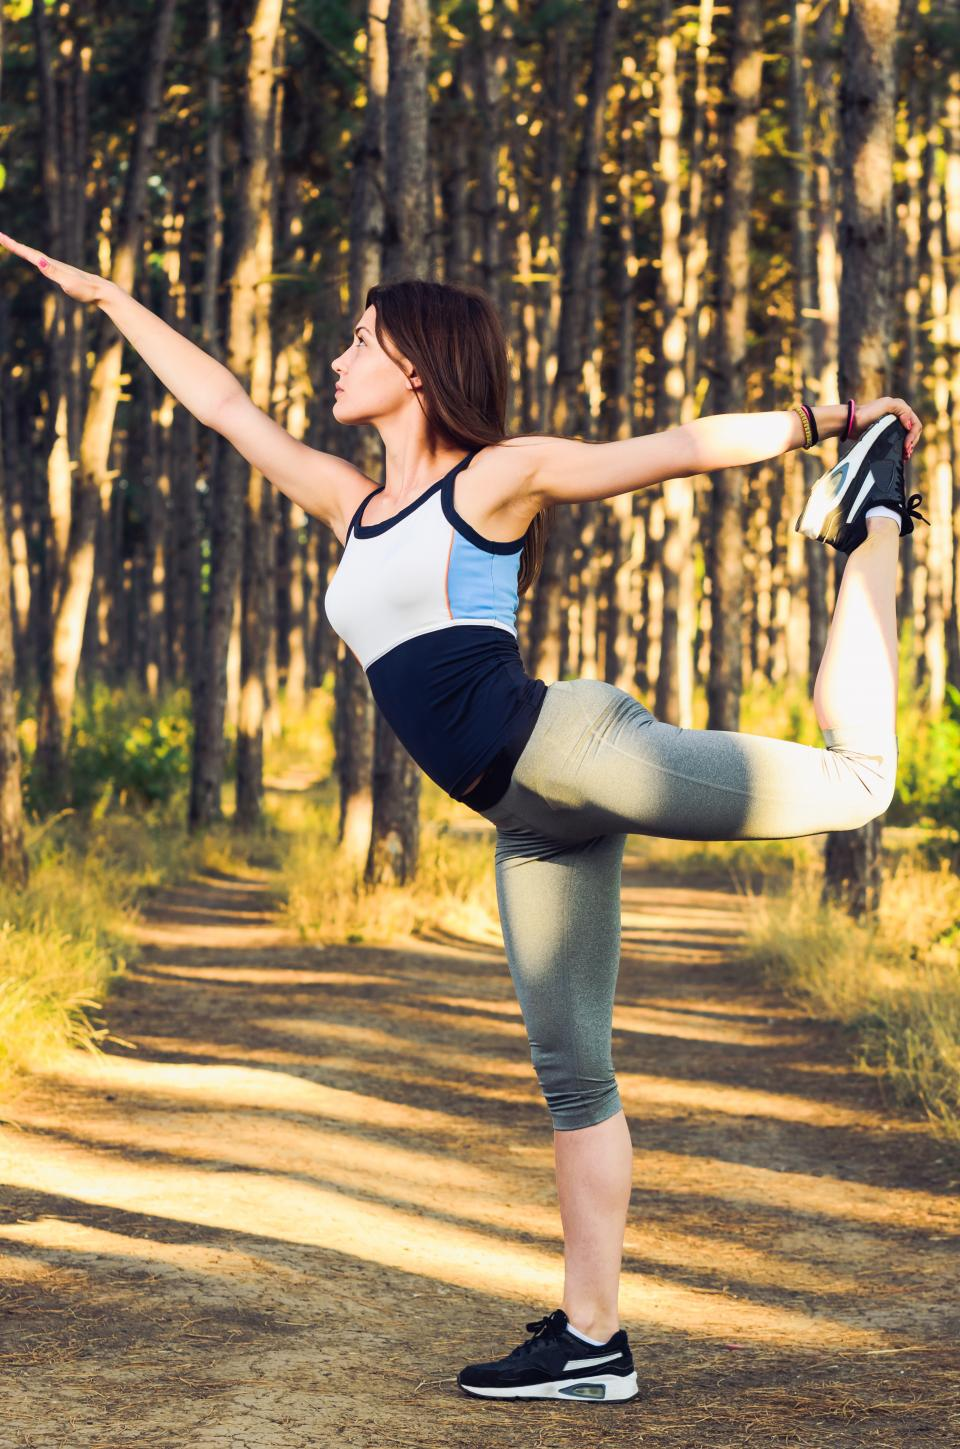 people, woman, girl, female, trees, plant, outdoor, nature, sunny, day, morning, exercise, physical, fitness, health, lifestyle, stretching, yoga